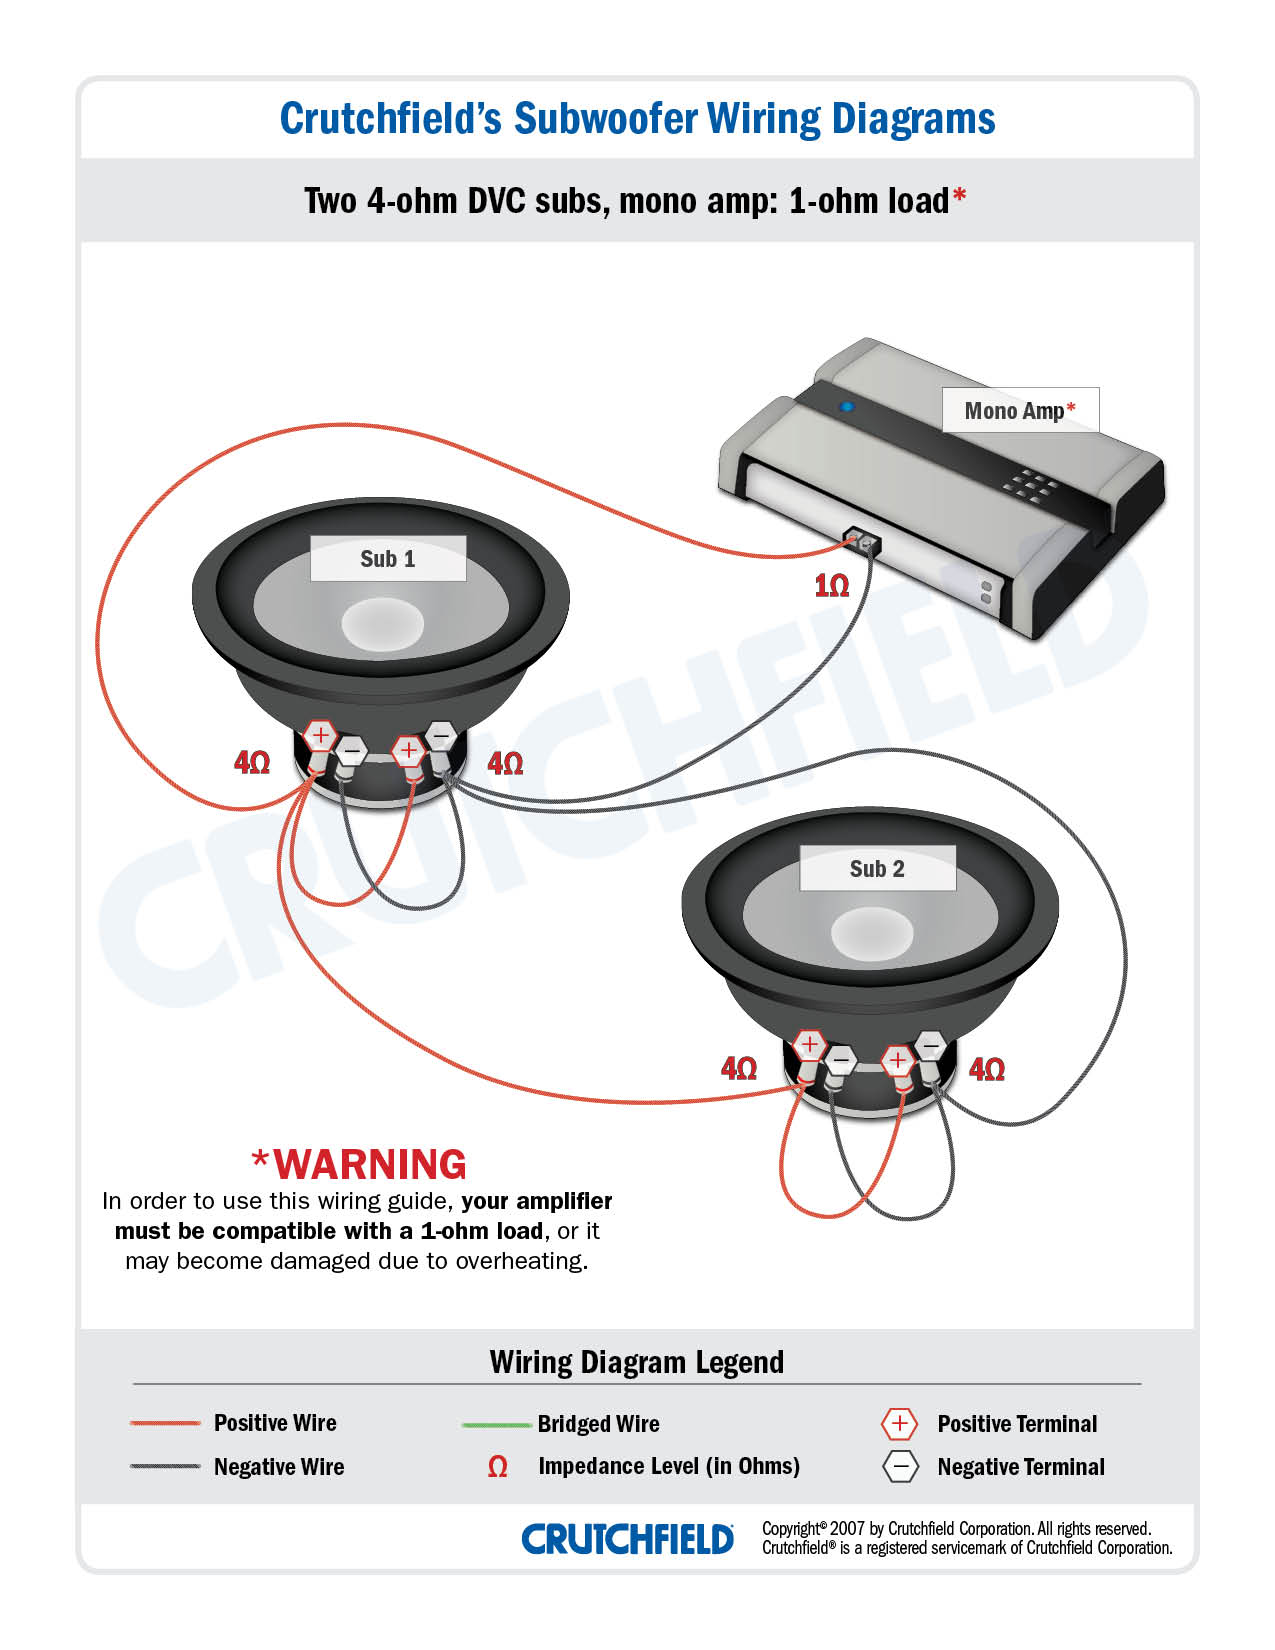 subwoofer wiring diagrams how to wire your subs Light Switch Wiring Diagram in your case, the 4 ohm wiring scheme is the only safe way to connect that gear together